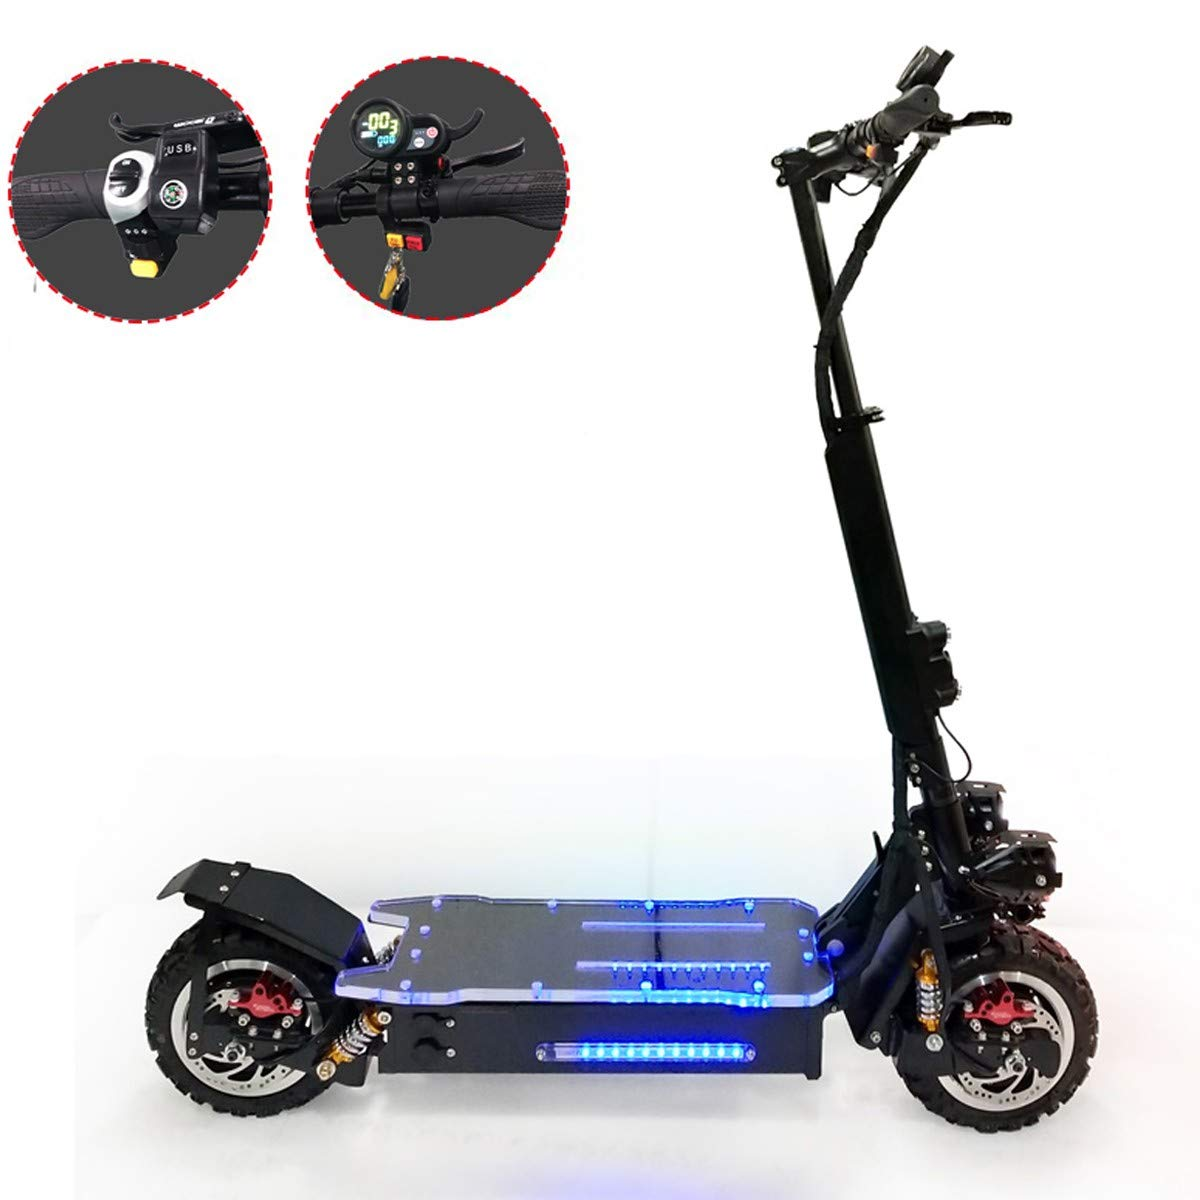 Amazon.com: ZMJJ Electric Scooter Adult Offroad 85KM/H ...